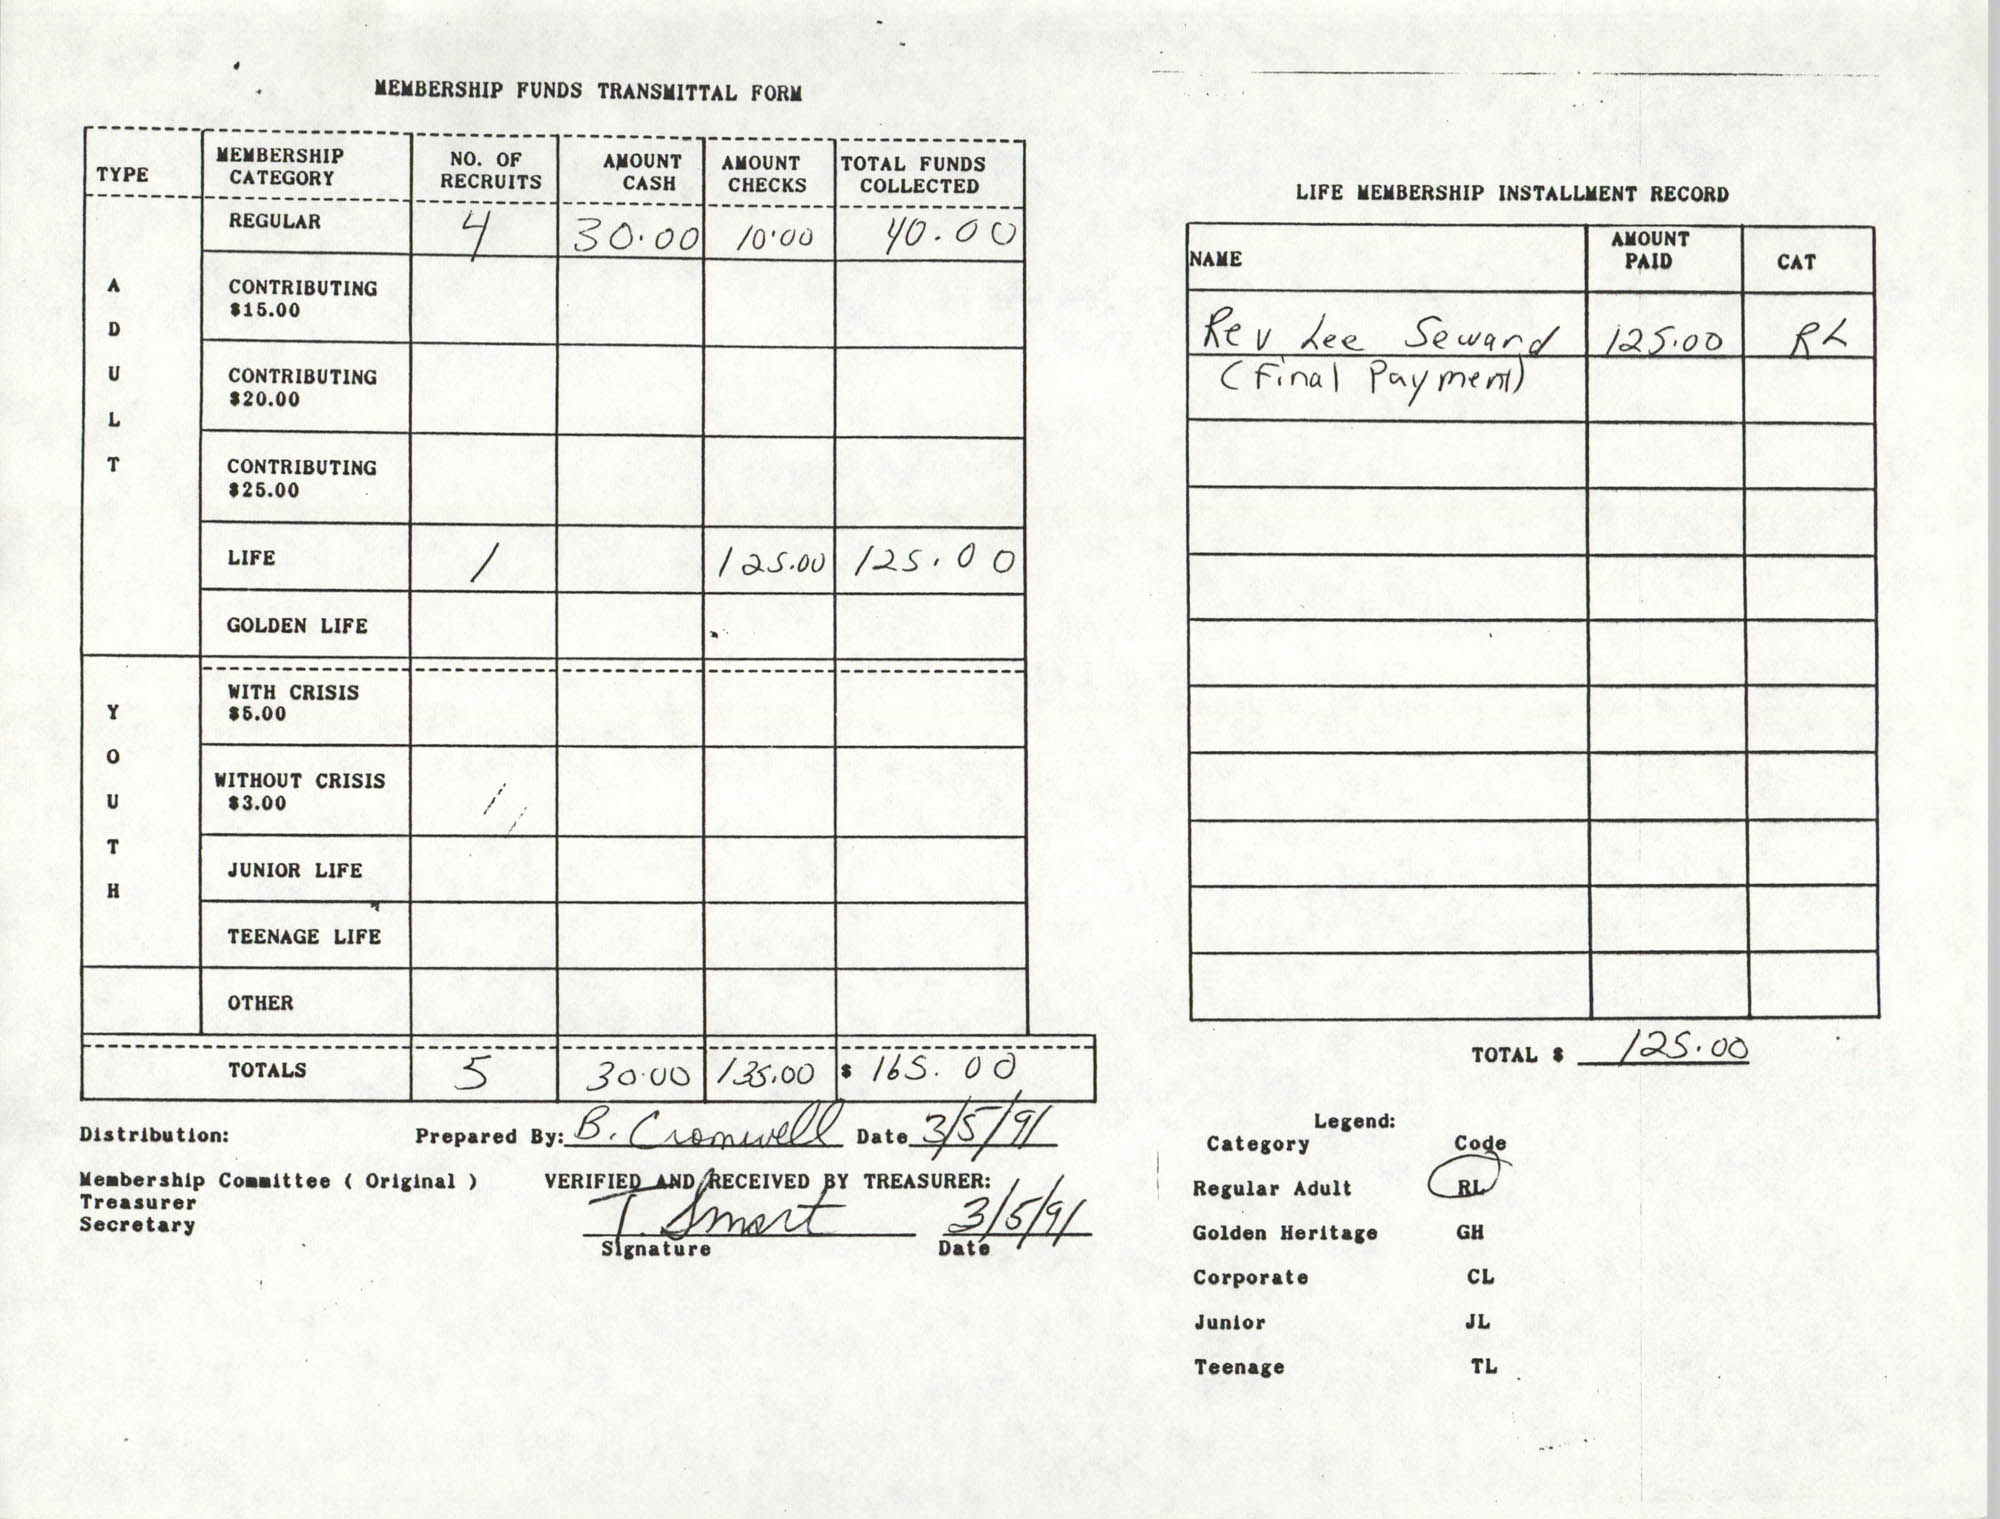 Charleston Branch of the NAACP Funds Transmittal Forms, March 1991, Page 3